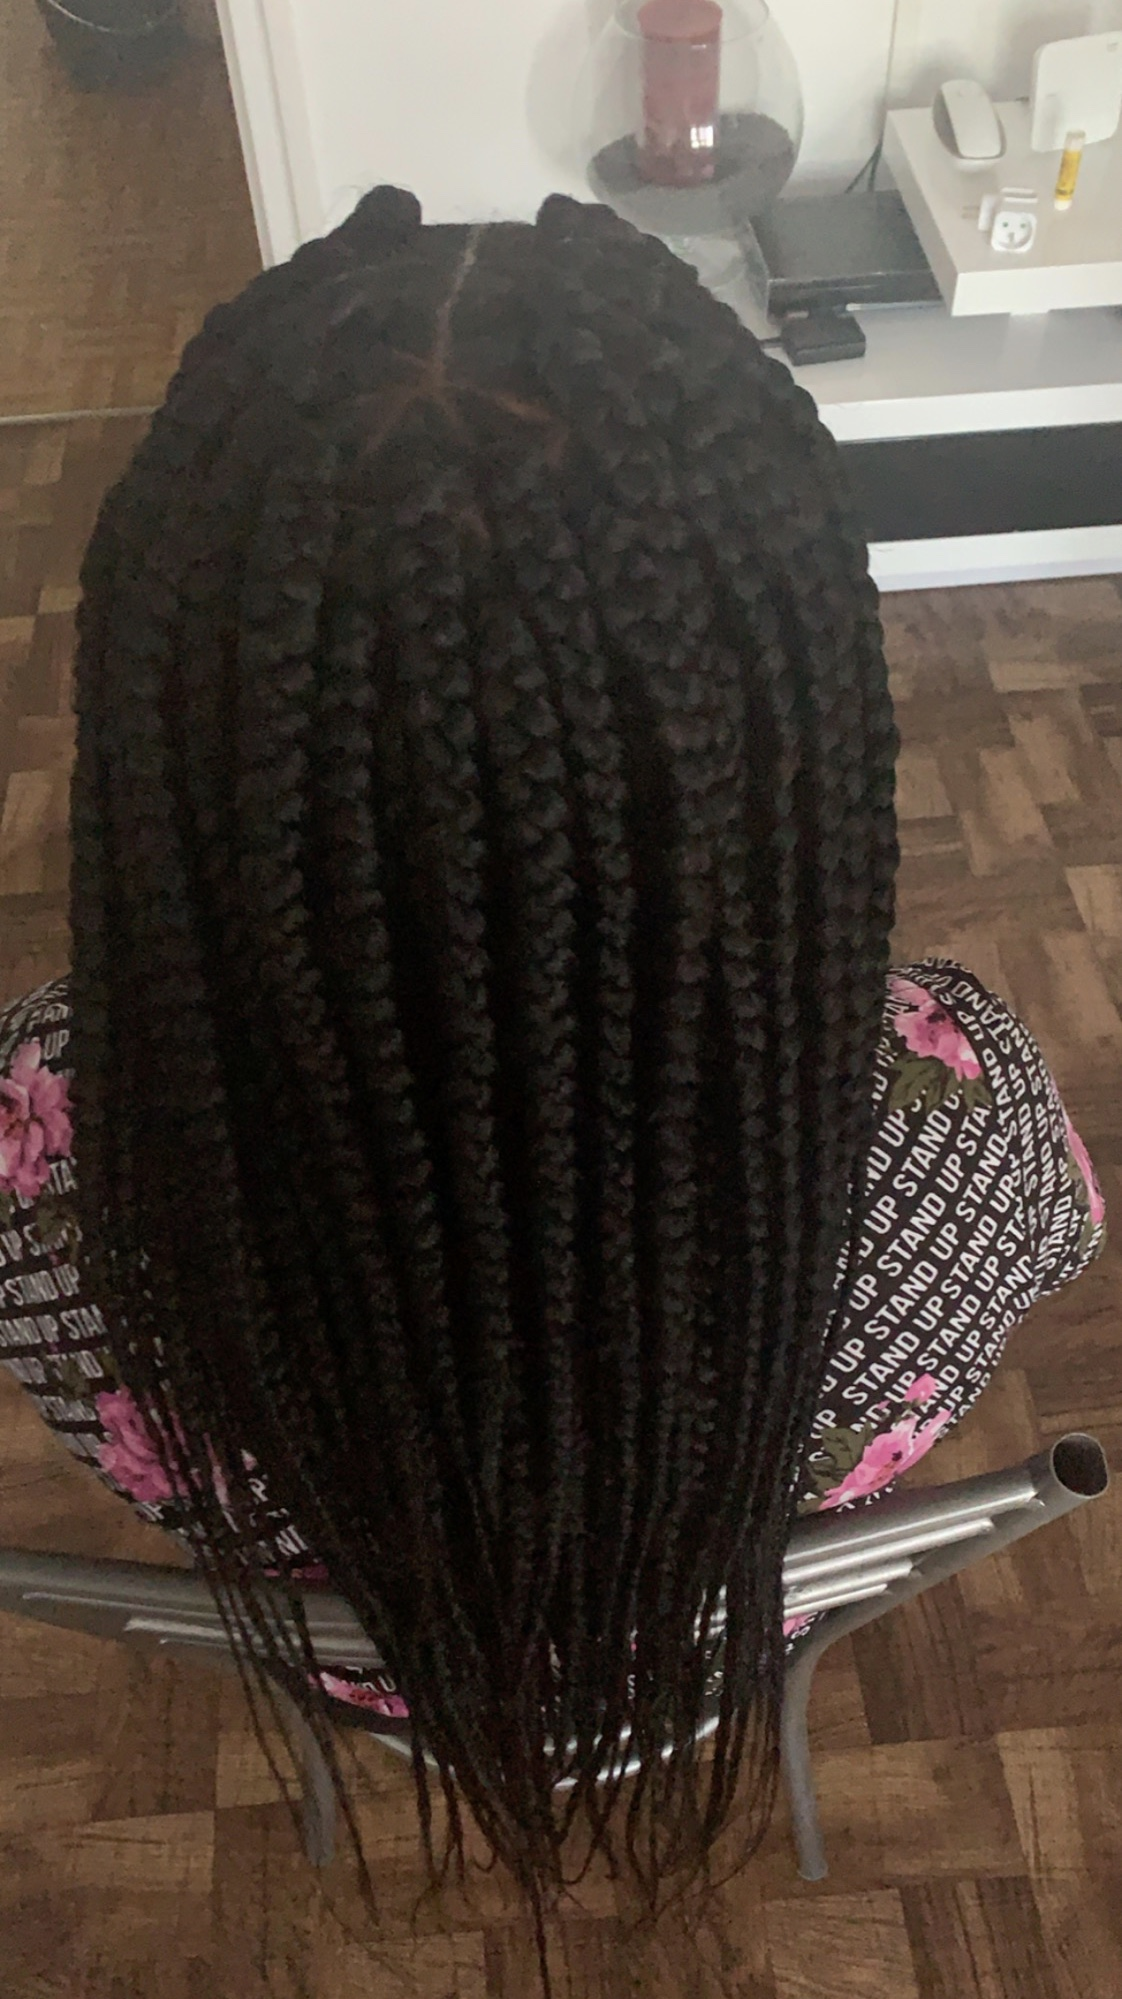 salon de coiffure afro tresse tresses box braids crochet braids vanilles tissages paris 75 77 78 91 92 93 94 95 NDJMYCWO